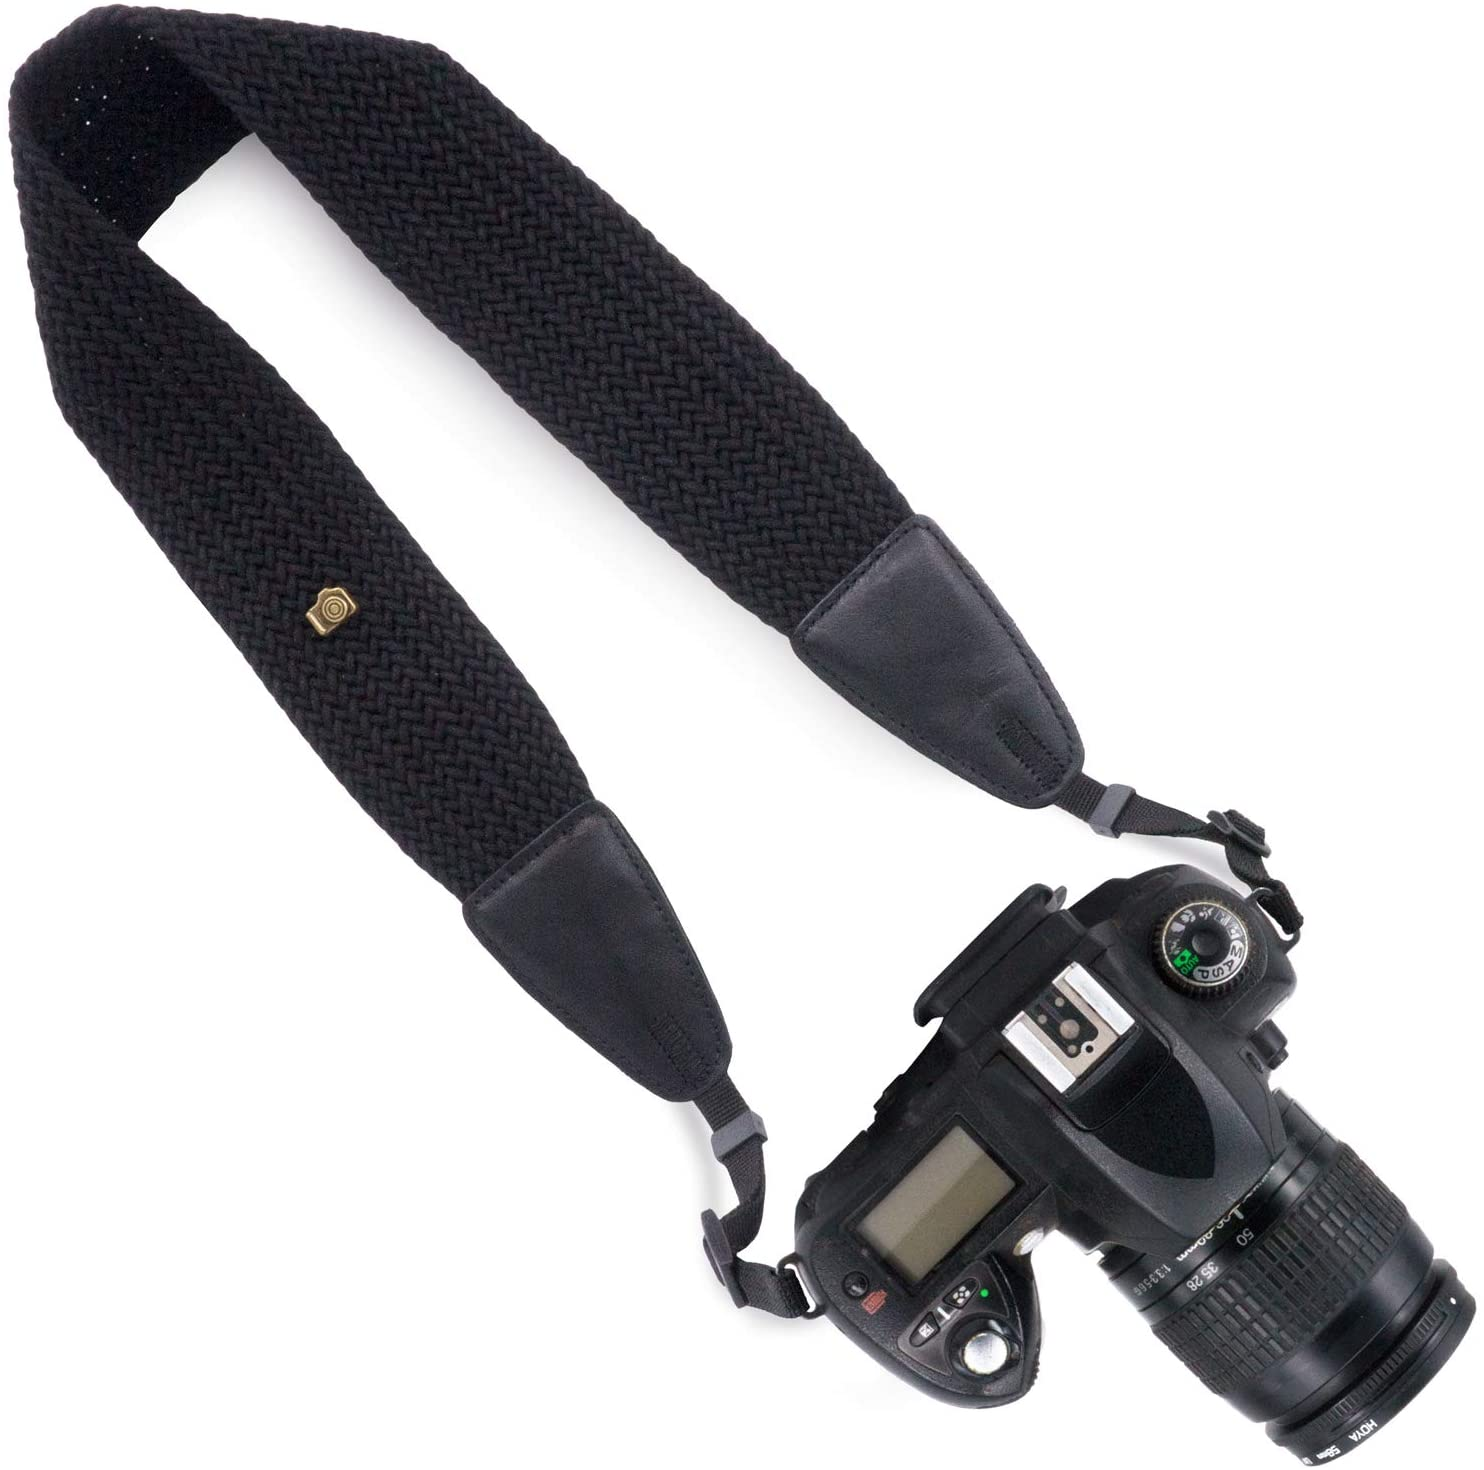 Wolven Weave DSLR/SLR Camera Neck Shoulder Belt Strap Compatible with All DSLR/SLR/Digital Camera (DC)/Instant Camera/Polaroid etc,Black